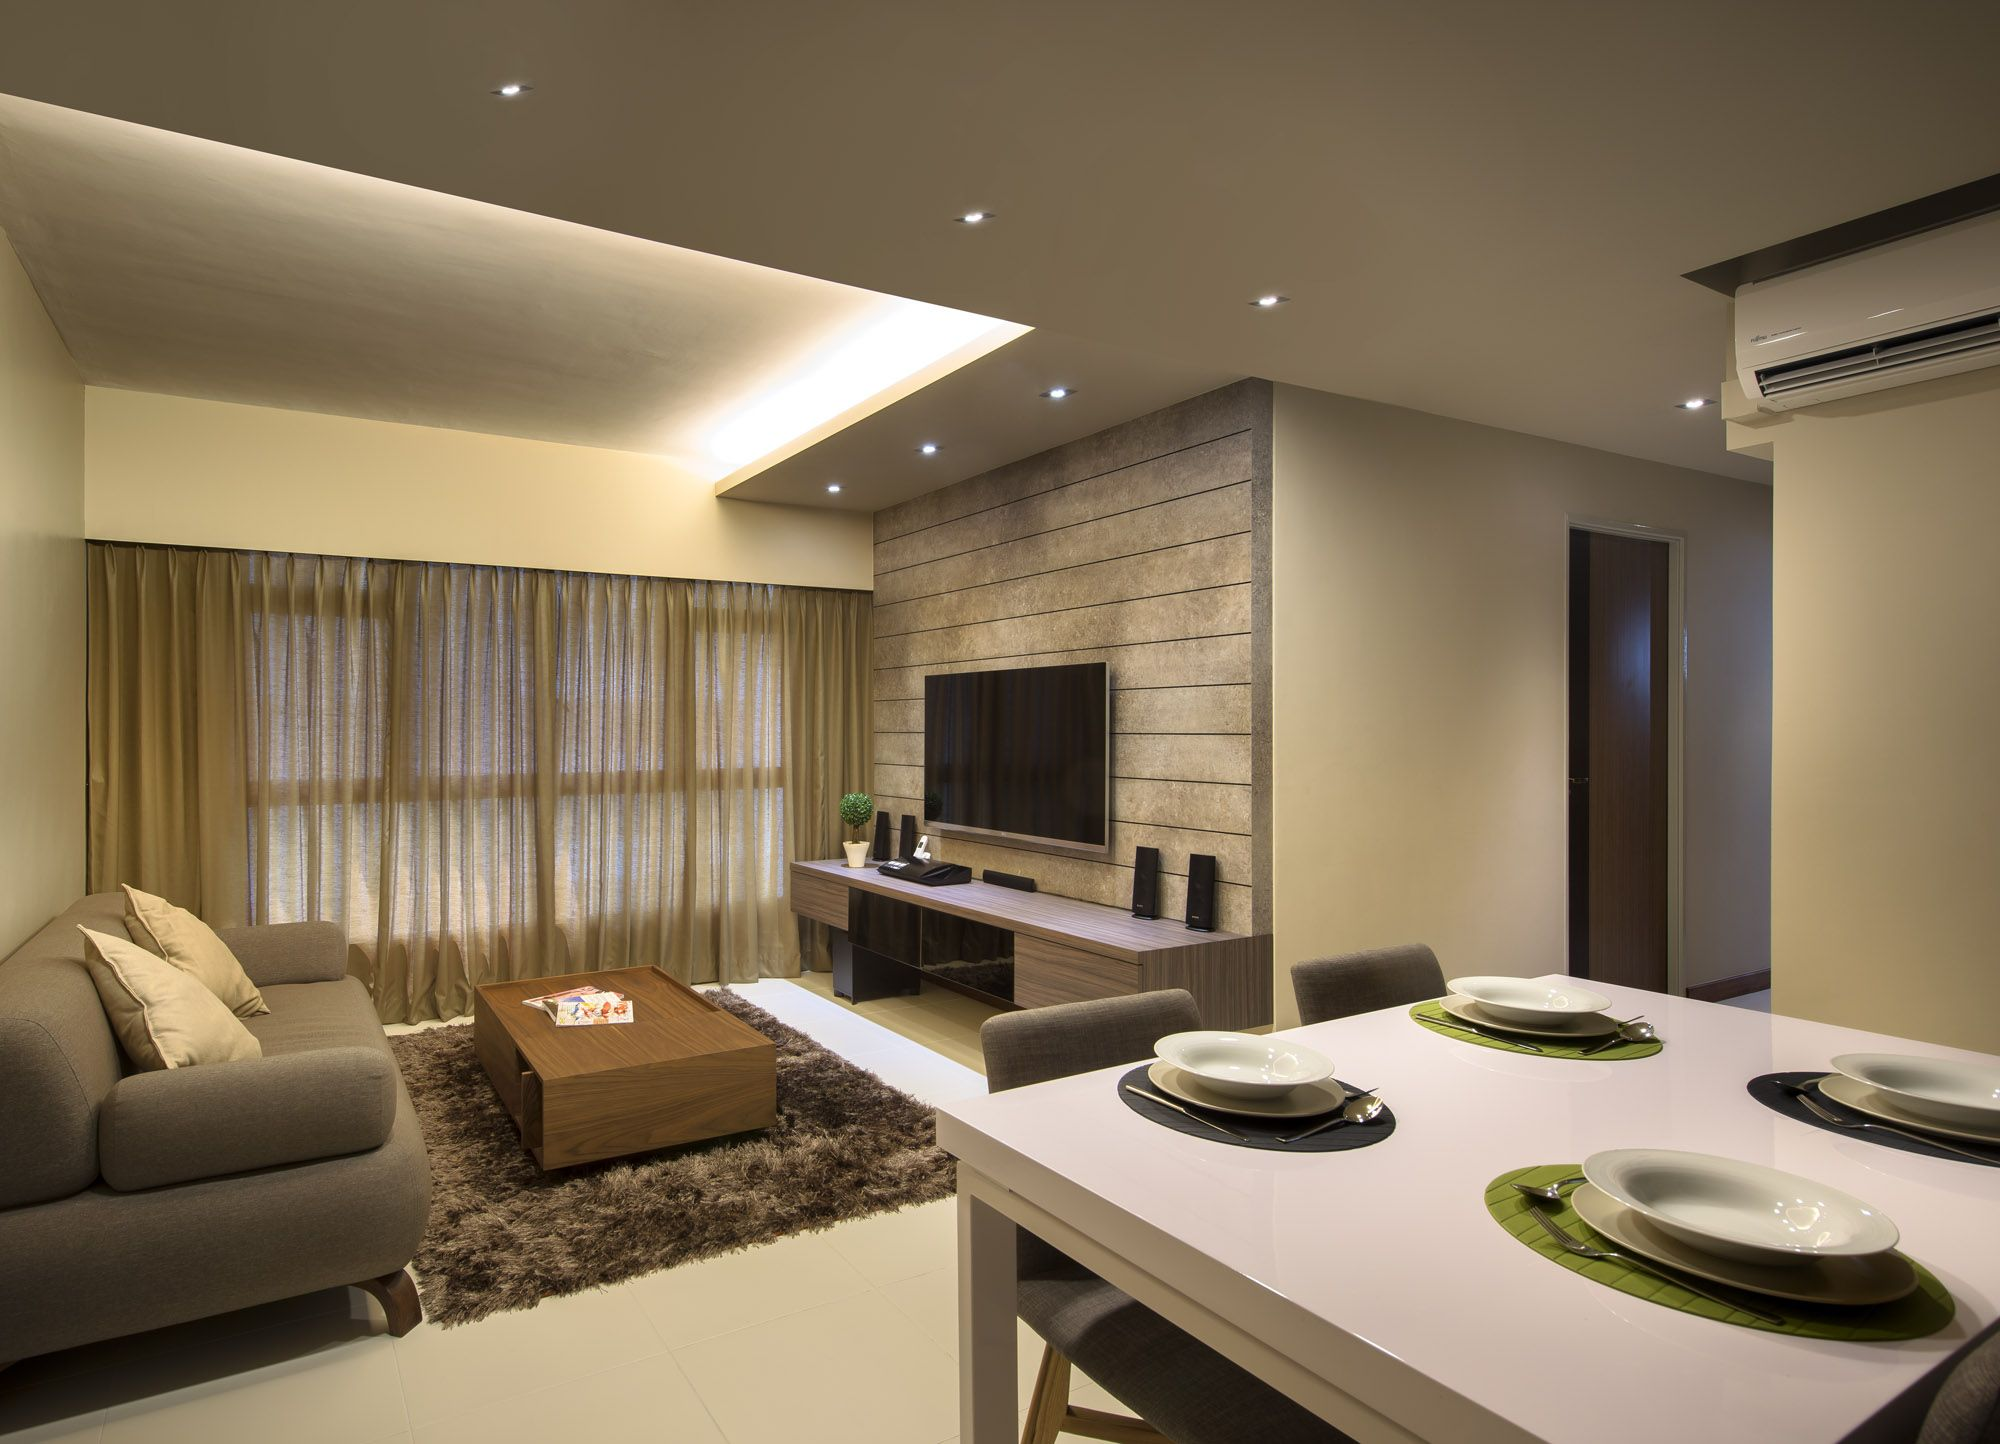 Rezt relax interior design and renovation singapore for Interior design renovation